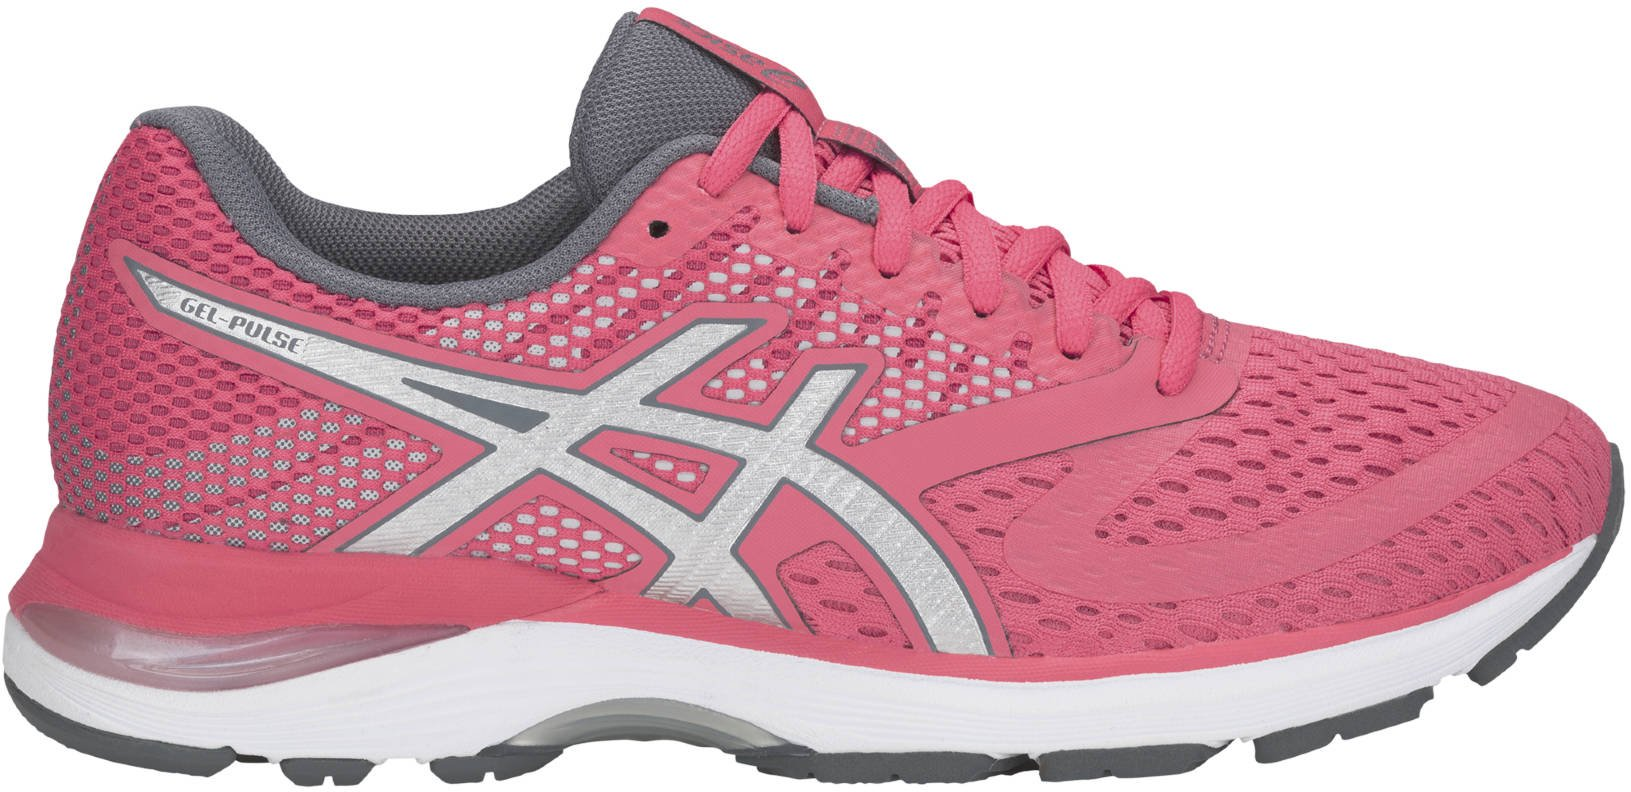 Zapatillas de running Asics GEL-PULSE 10